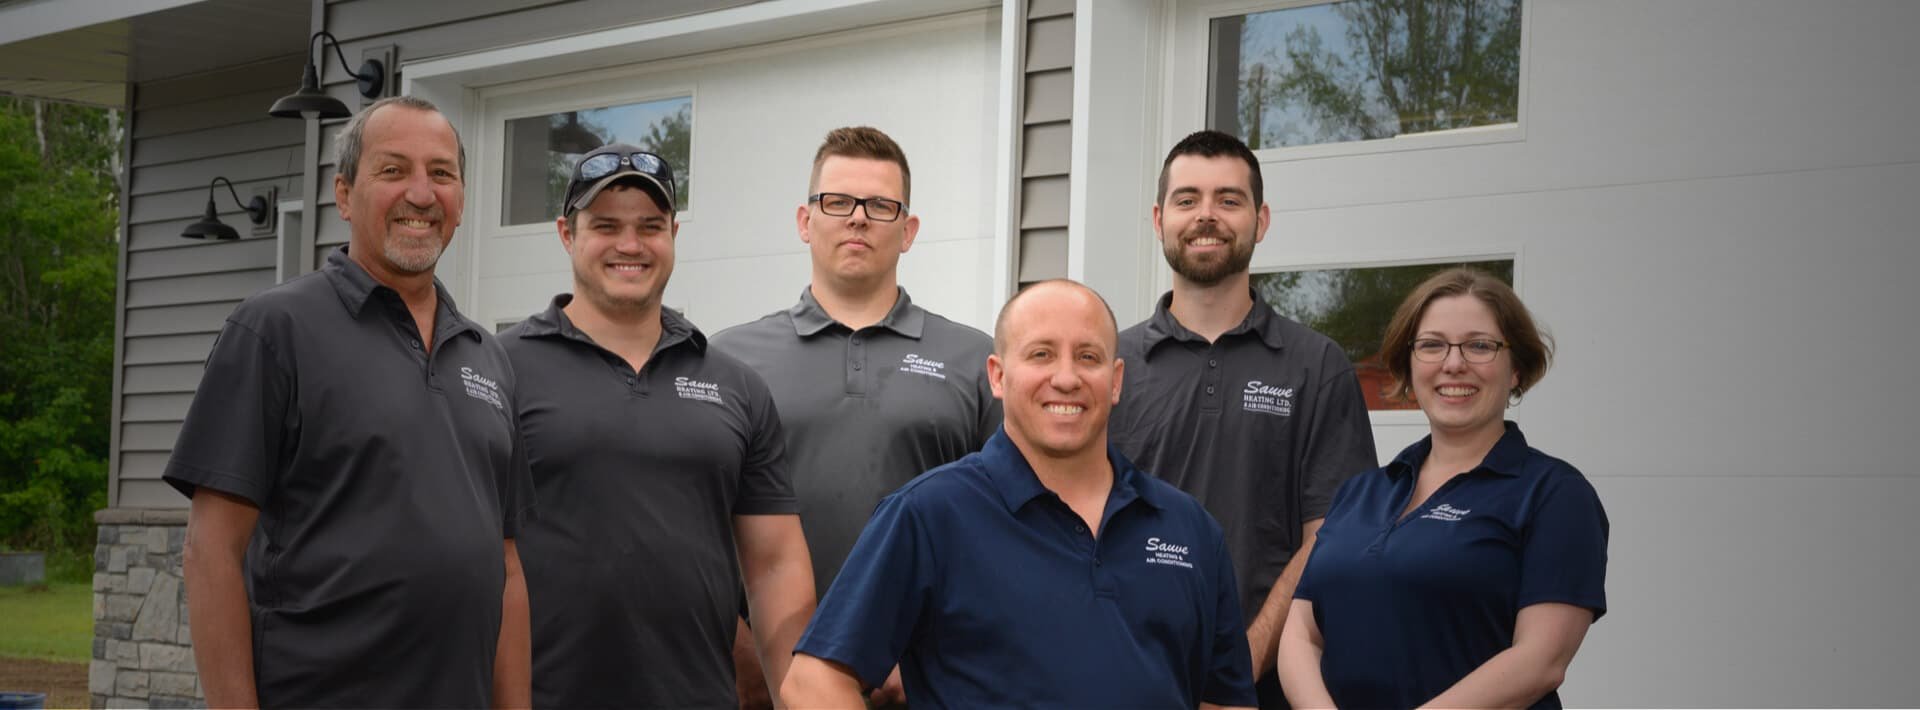 HVAC team at Sauve heating and ac in Ottawa